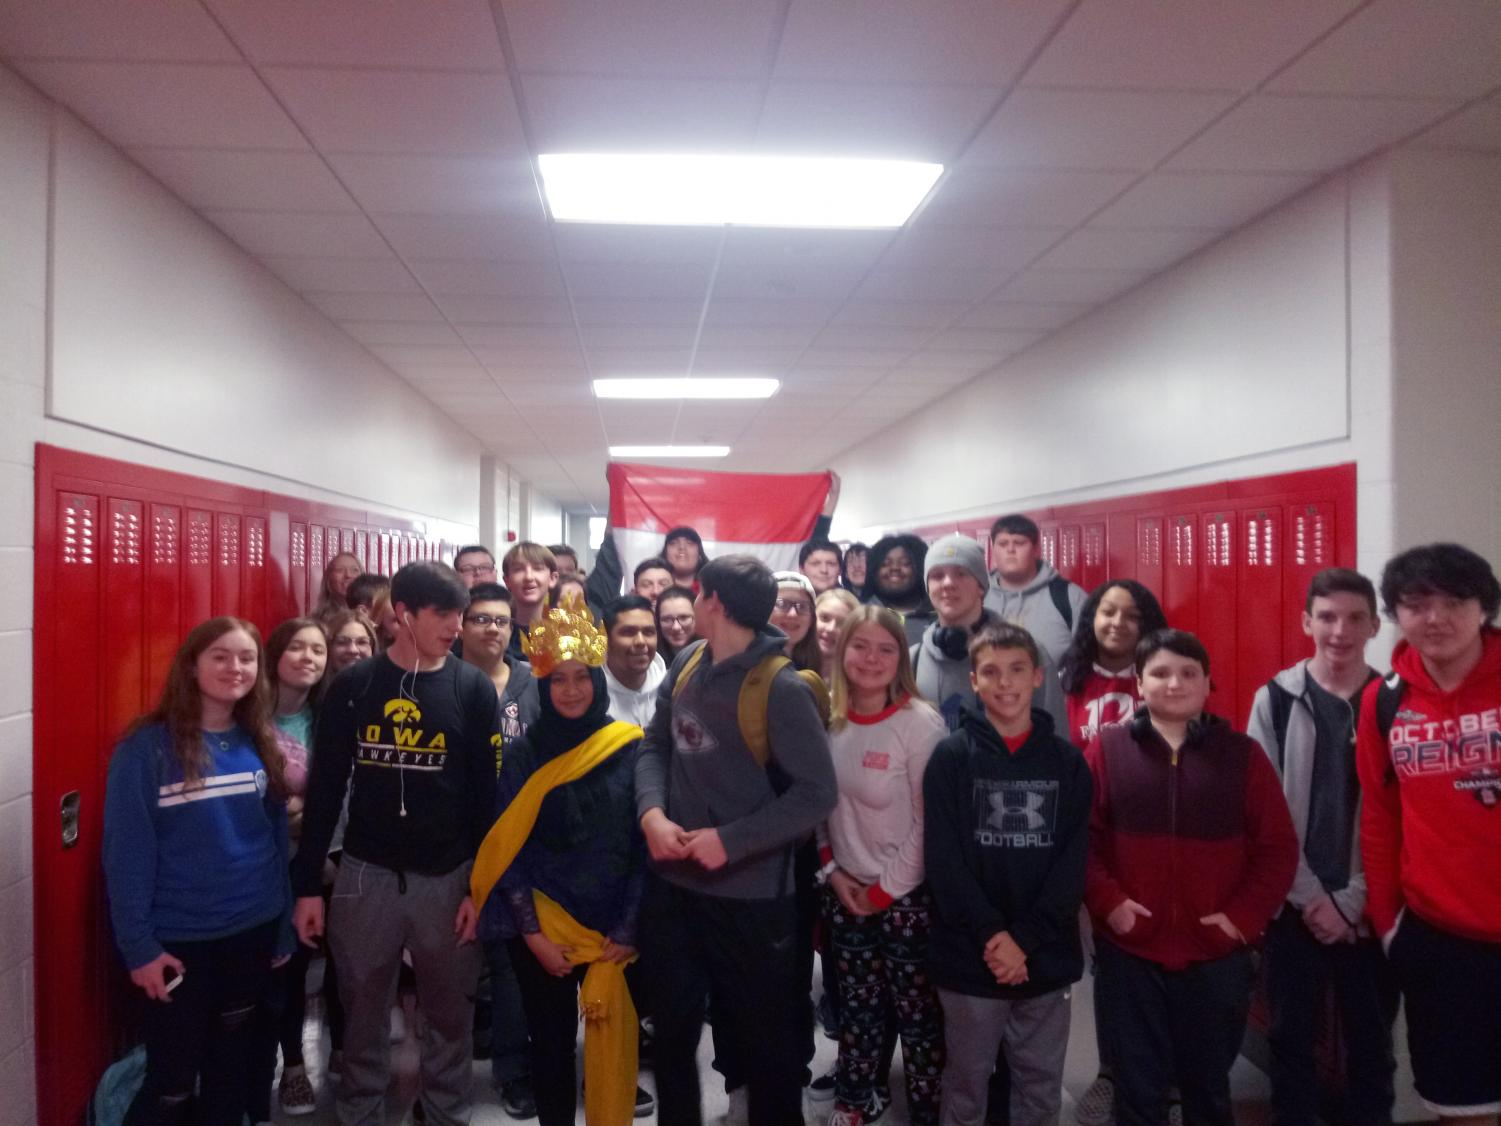 World language teacher Kris Castelluccio's Spanish 2 class of 37 fills the hallway after a presentation. Her class was leaving the classroom at the end of the Friday afternoon class and filled up a portion of the language hallway from one side to the other.